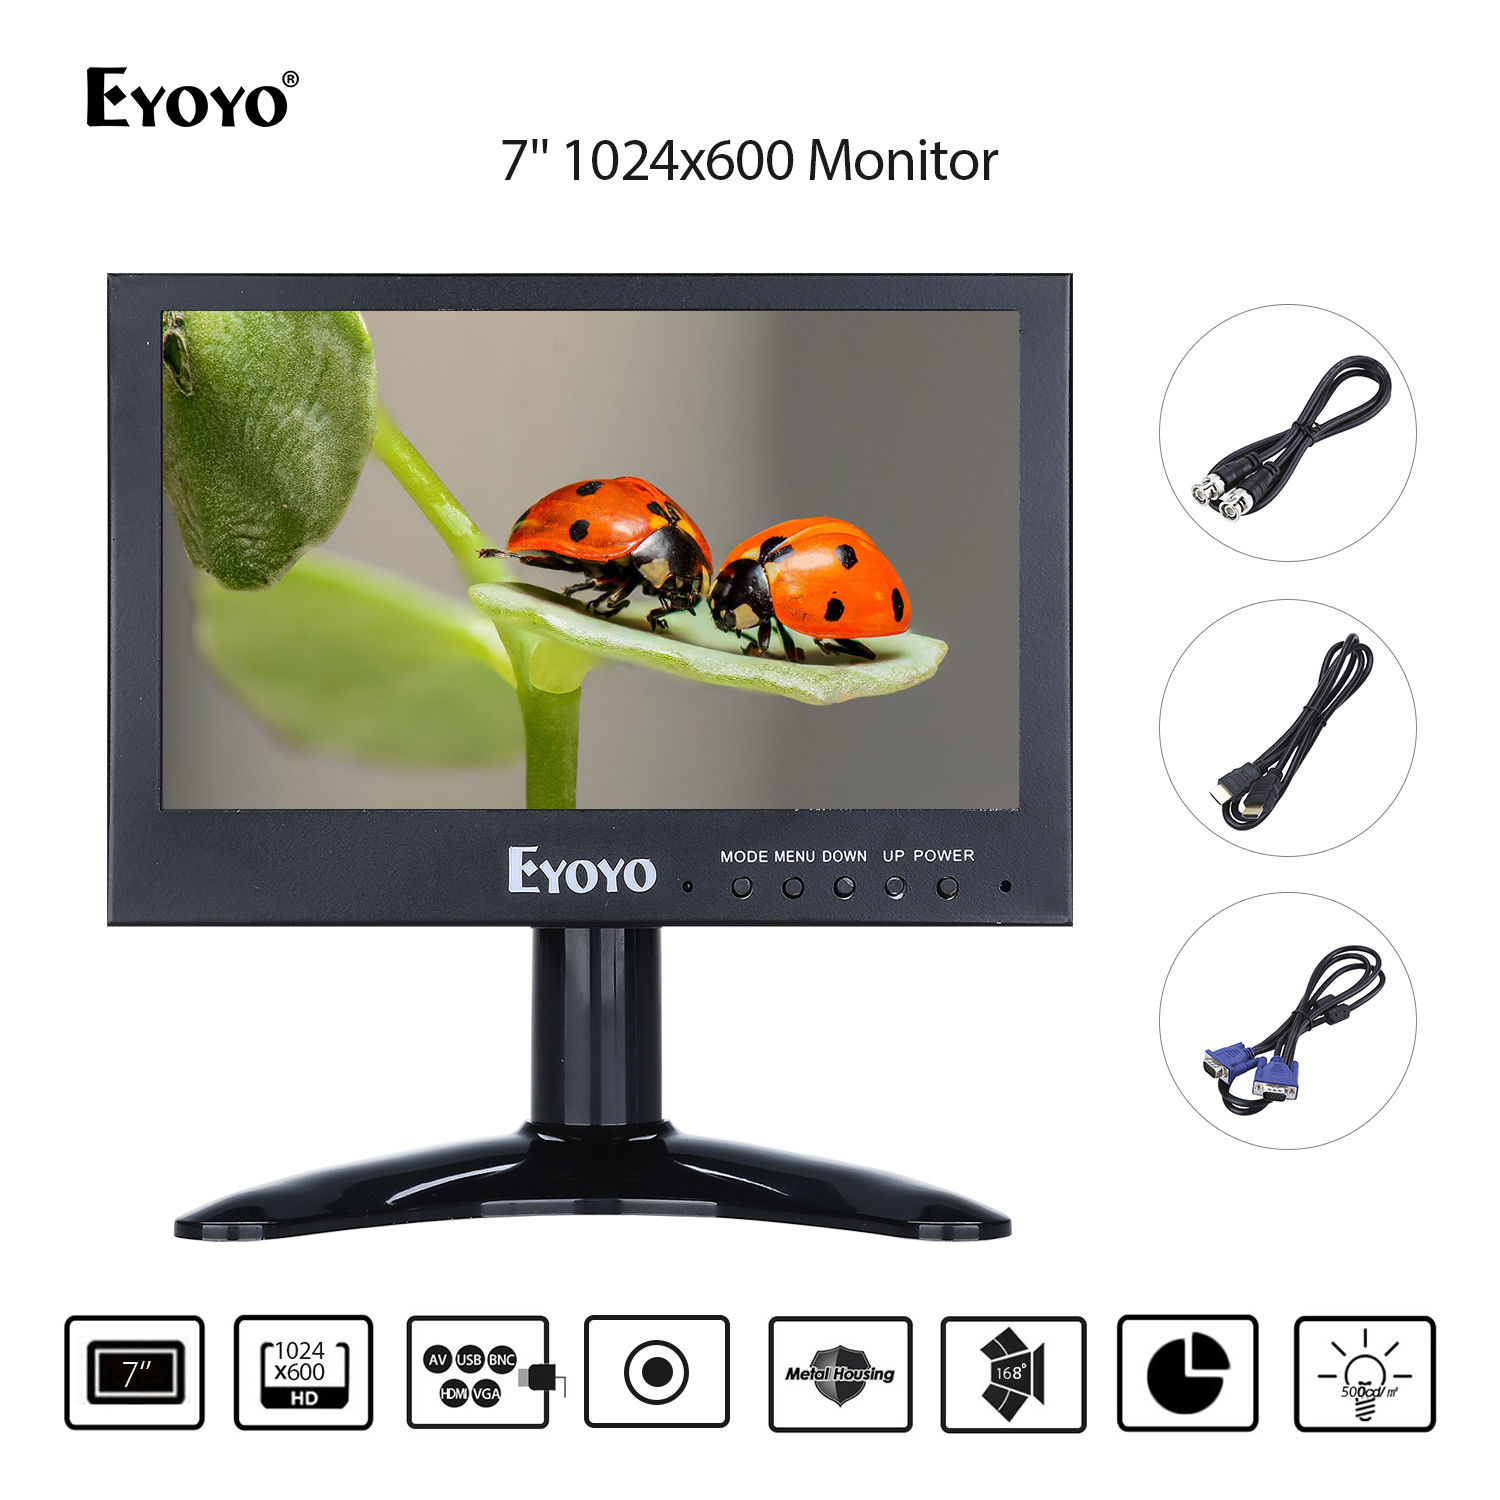 Eyoyo  7 Mini Monitor 1024x768 LCD Screen CMOS Display 16:9 168degree Wide Angle View BNC/USB/HDMI Output Metal Hosing Design 9 7 lcd display screen for onyx boox 9 7 m92 m92s e book reading